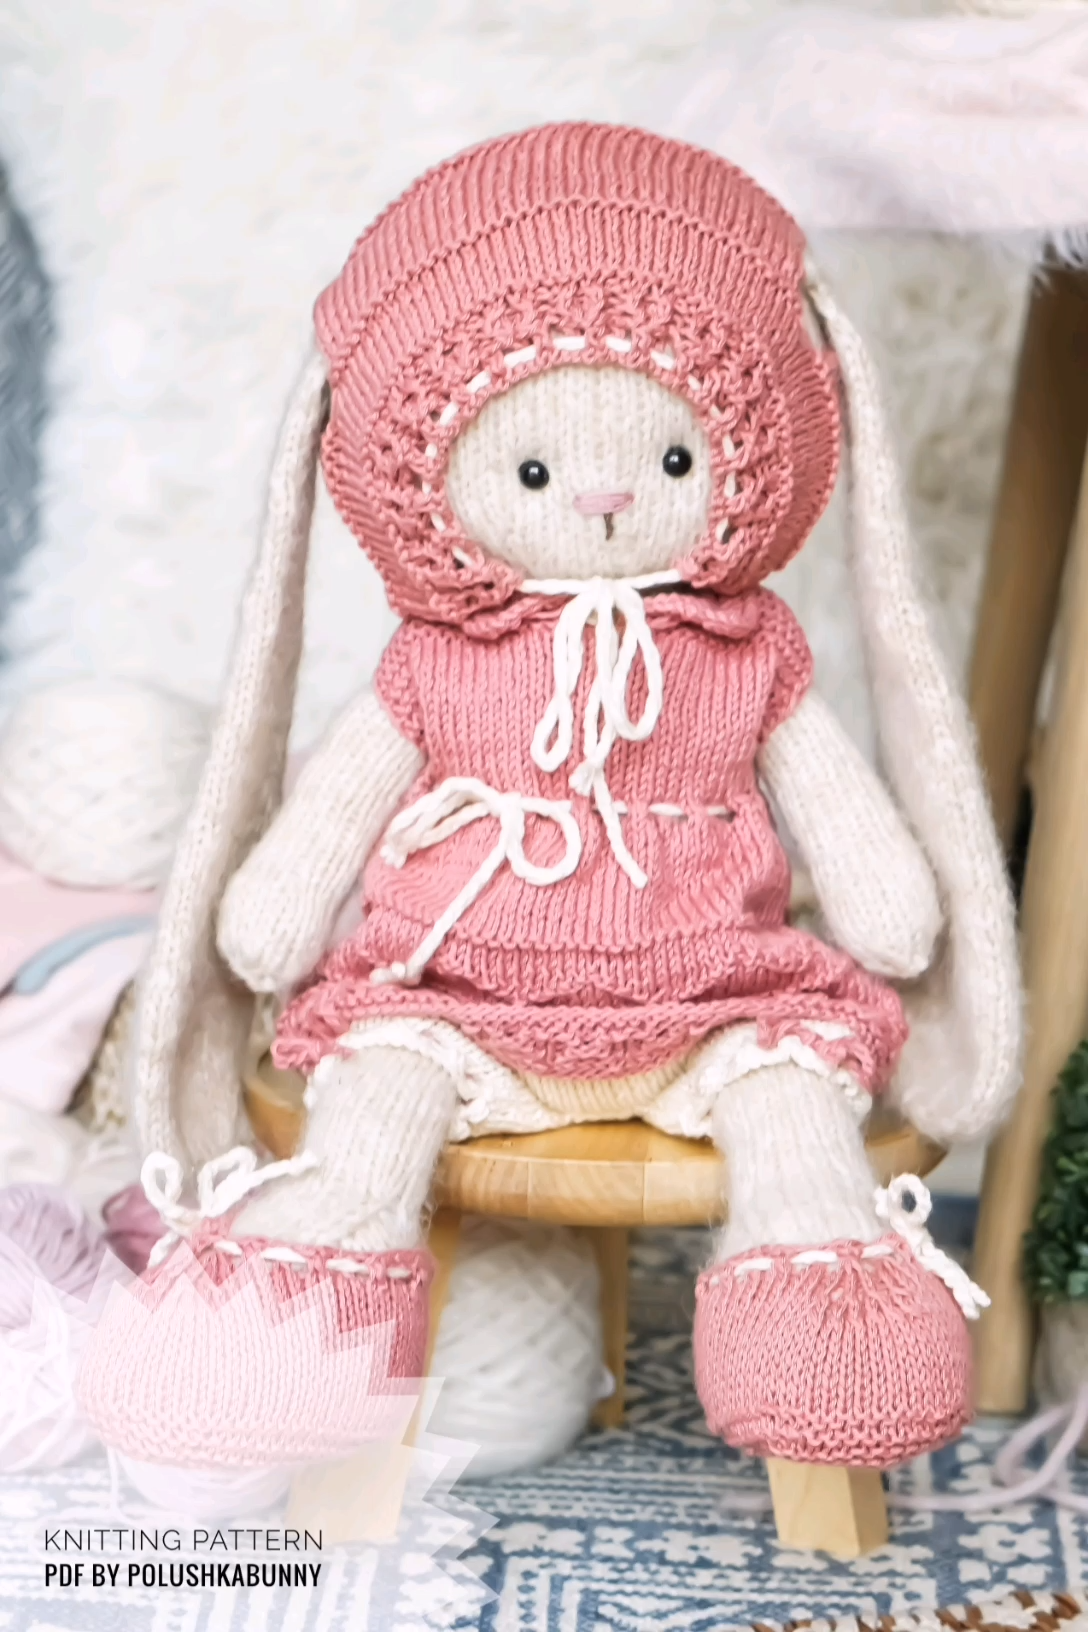 Photo of Easter Knitting Pattern pdf Pretty Outfit for Bunny Toy by PolushkaBunny #easter #bunny #knitting